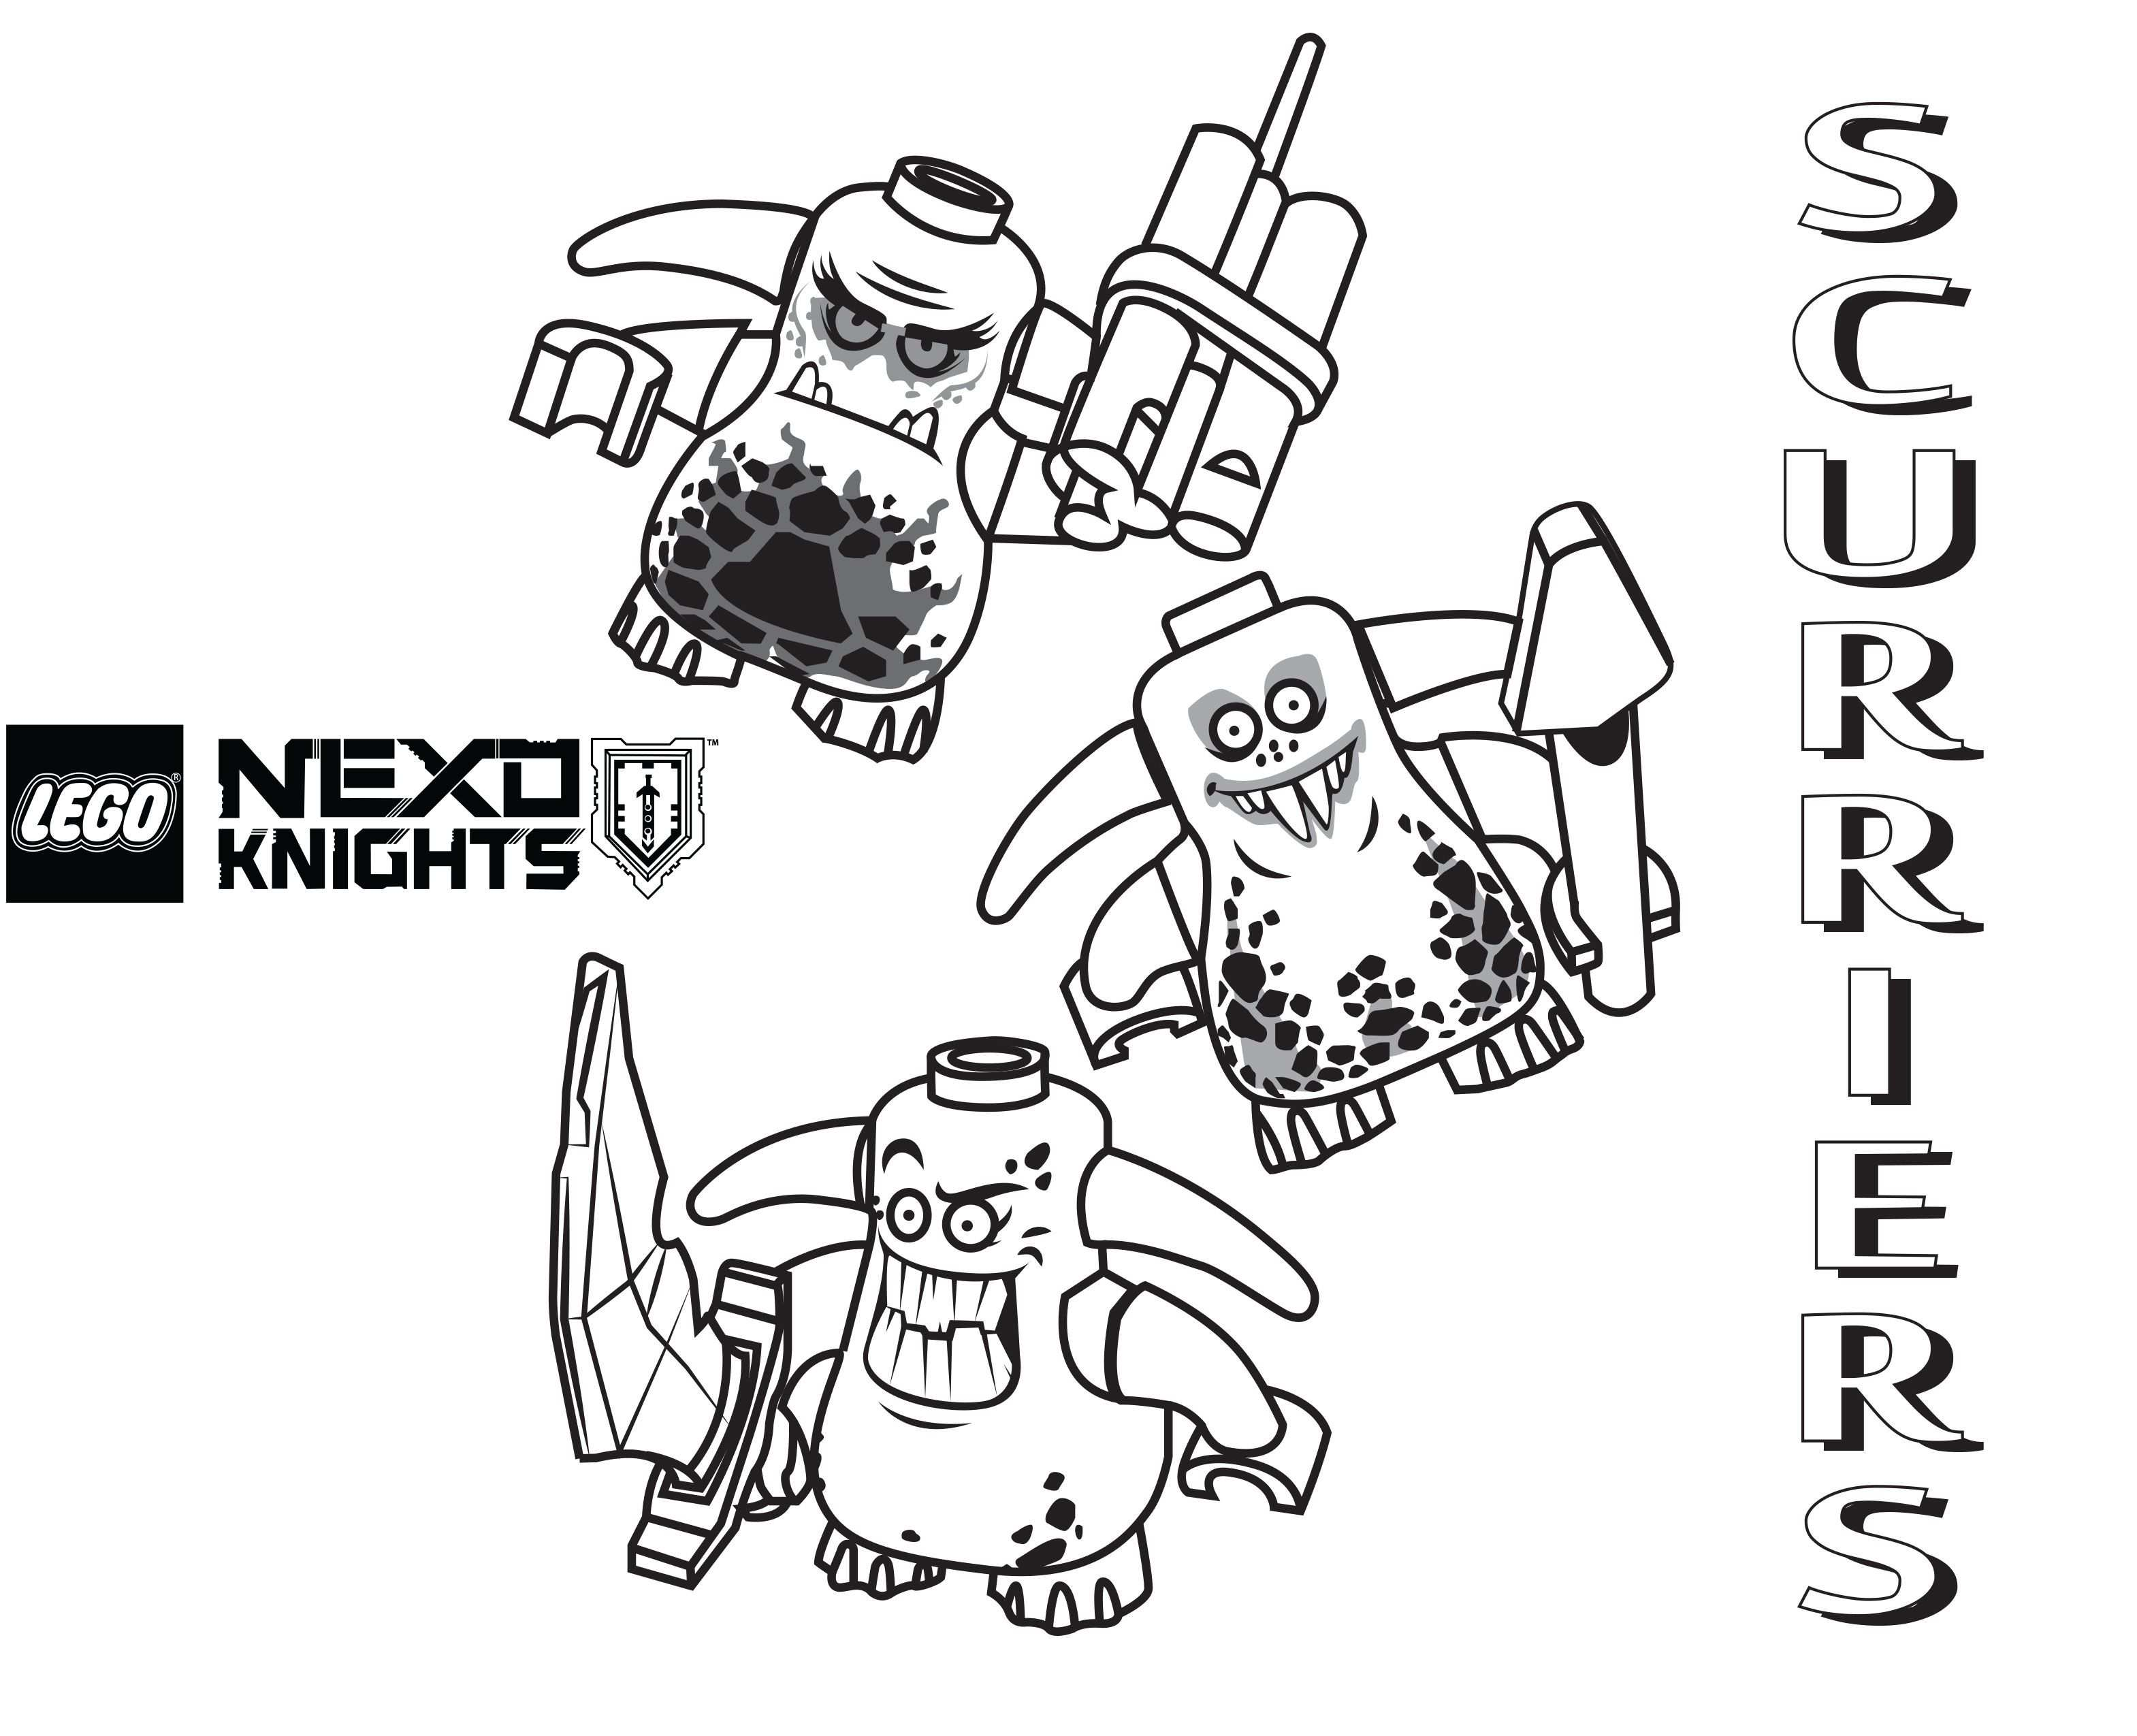 Nexo Lego Knights Coloring Pages Lego Coloring Pages Coloring